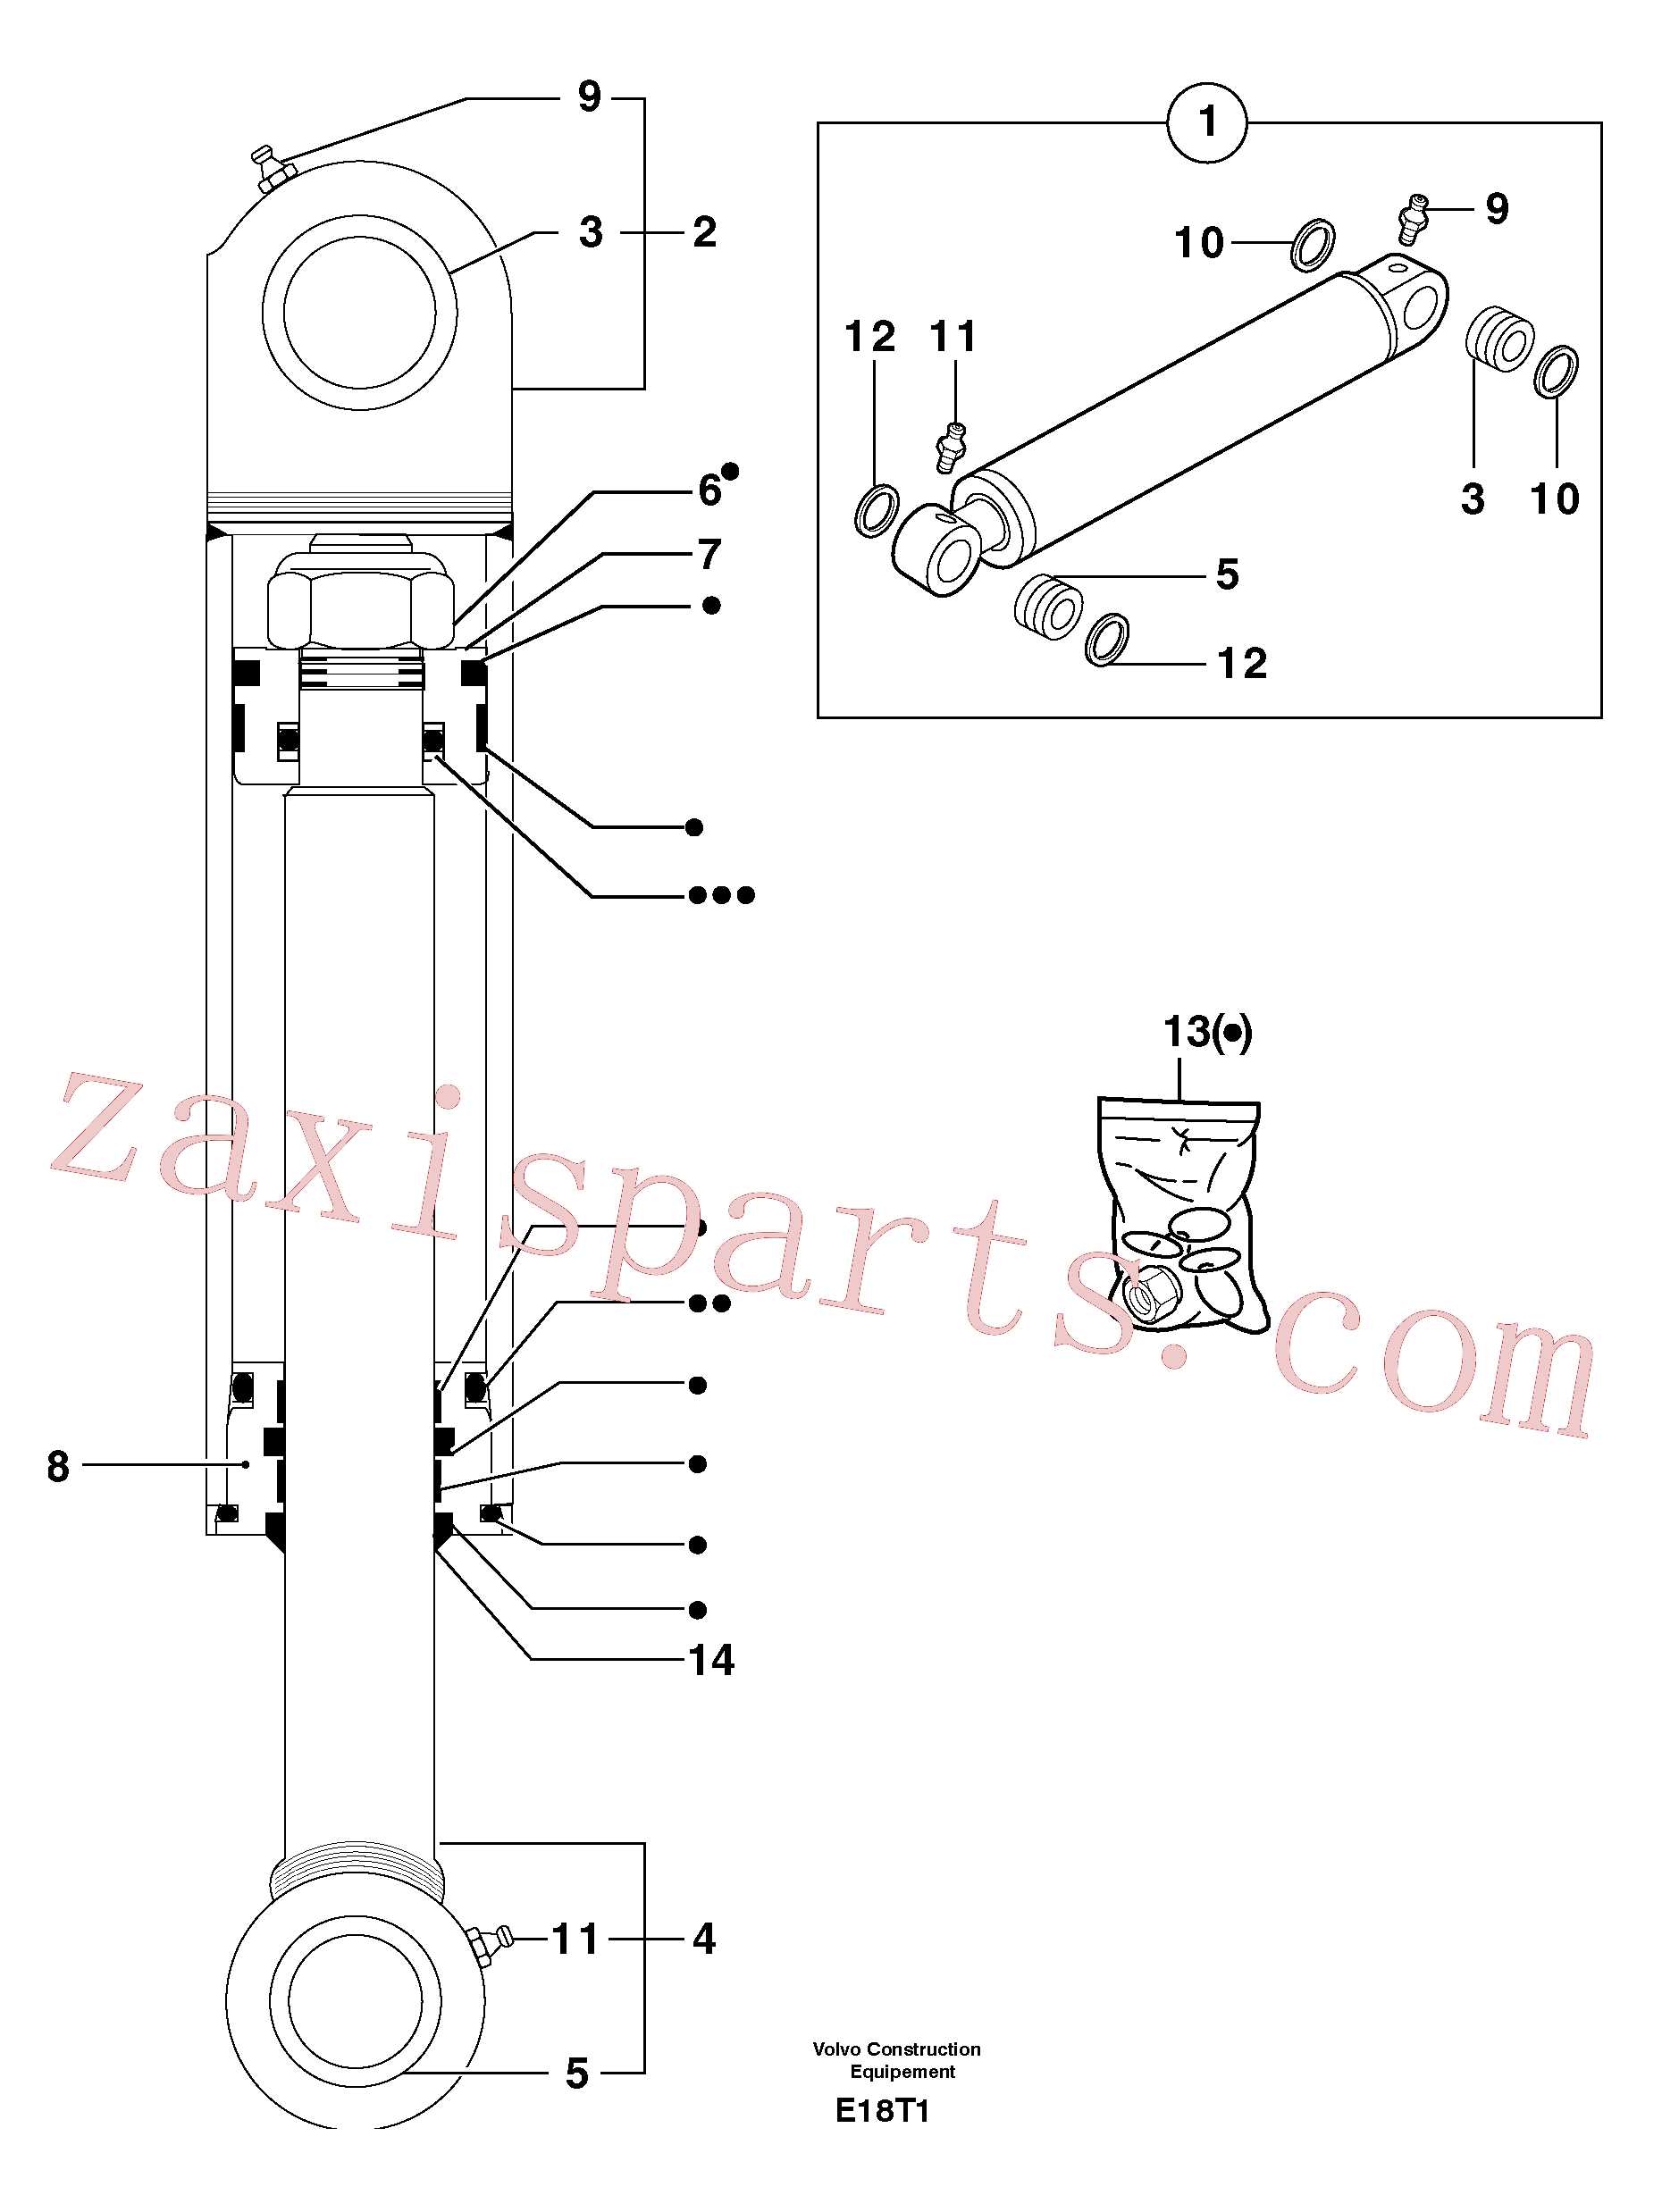 PJ5930268 for Volvo Intermediate boom cylinder(E18T1 assembly)